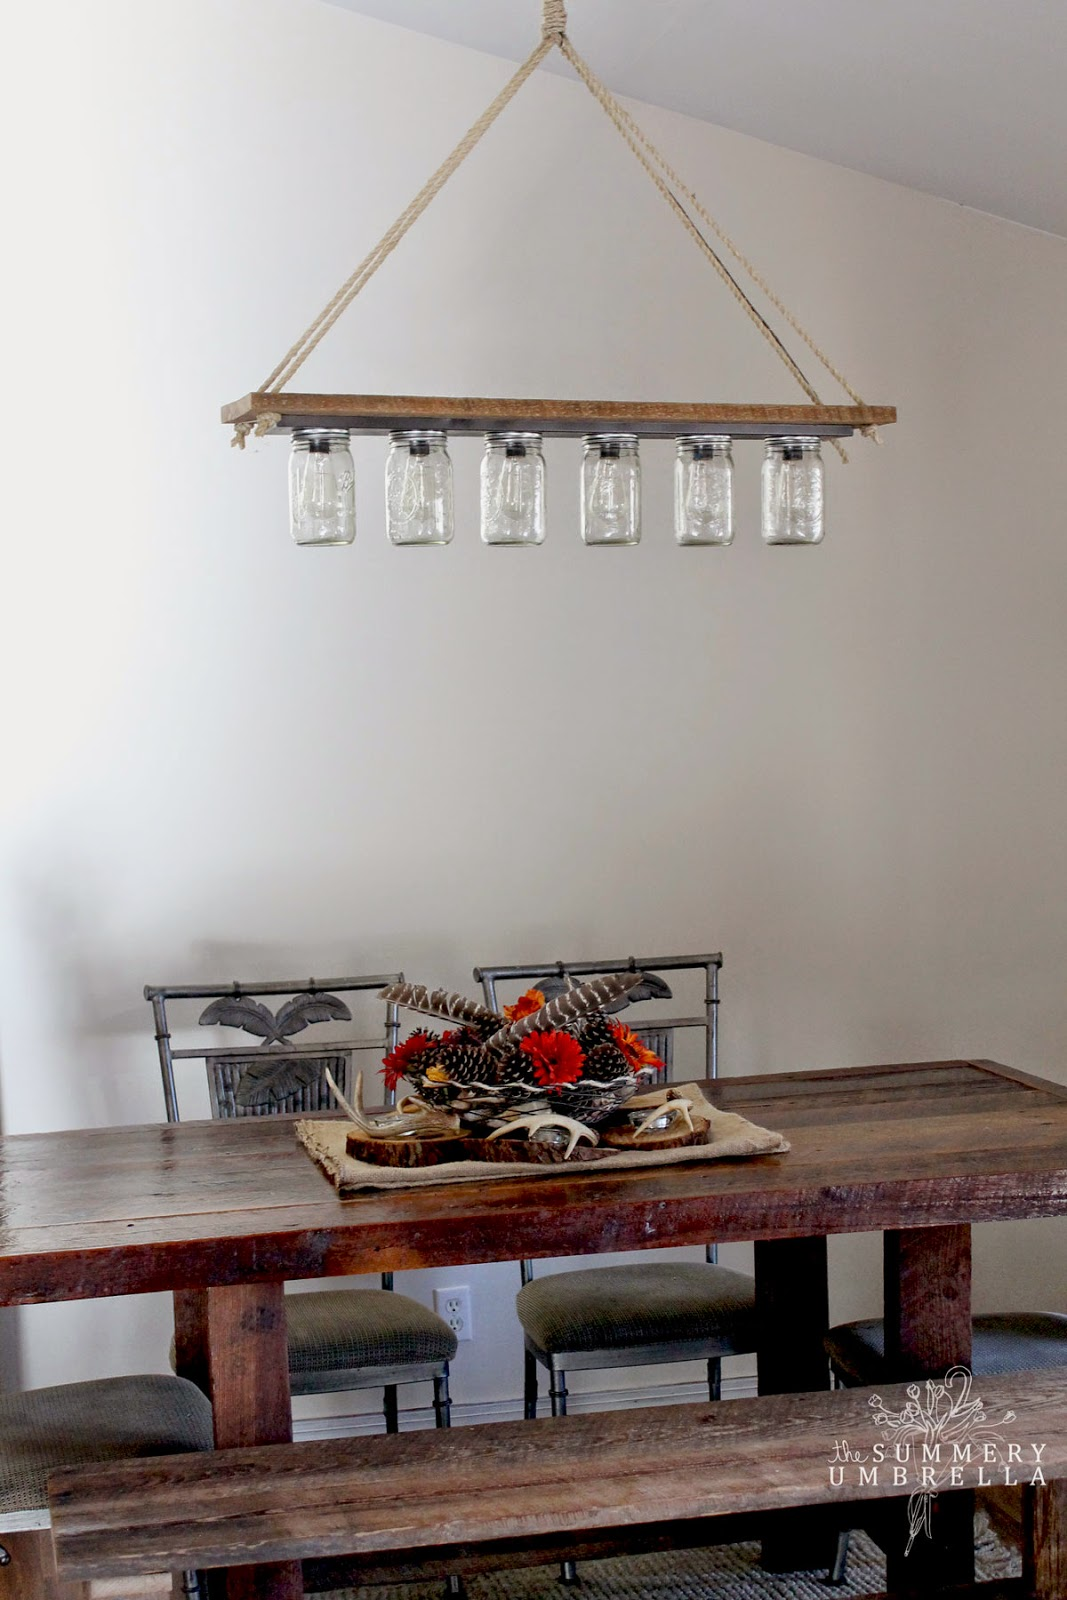 Simple rustic mason jar and wood hanging chandelier pendant light DIY The Summery Umbrella featured on